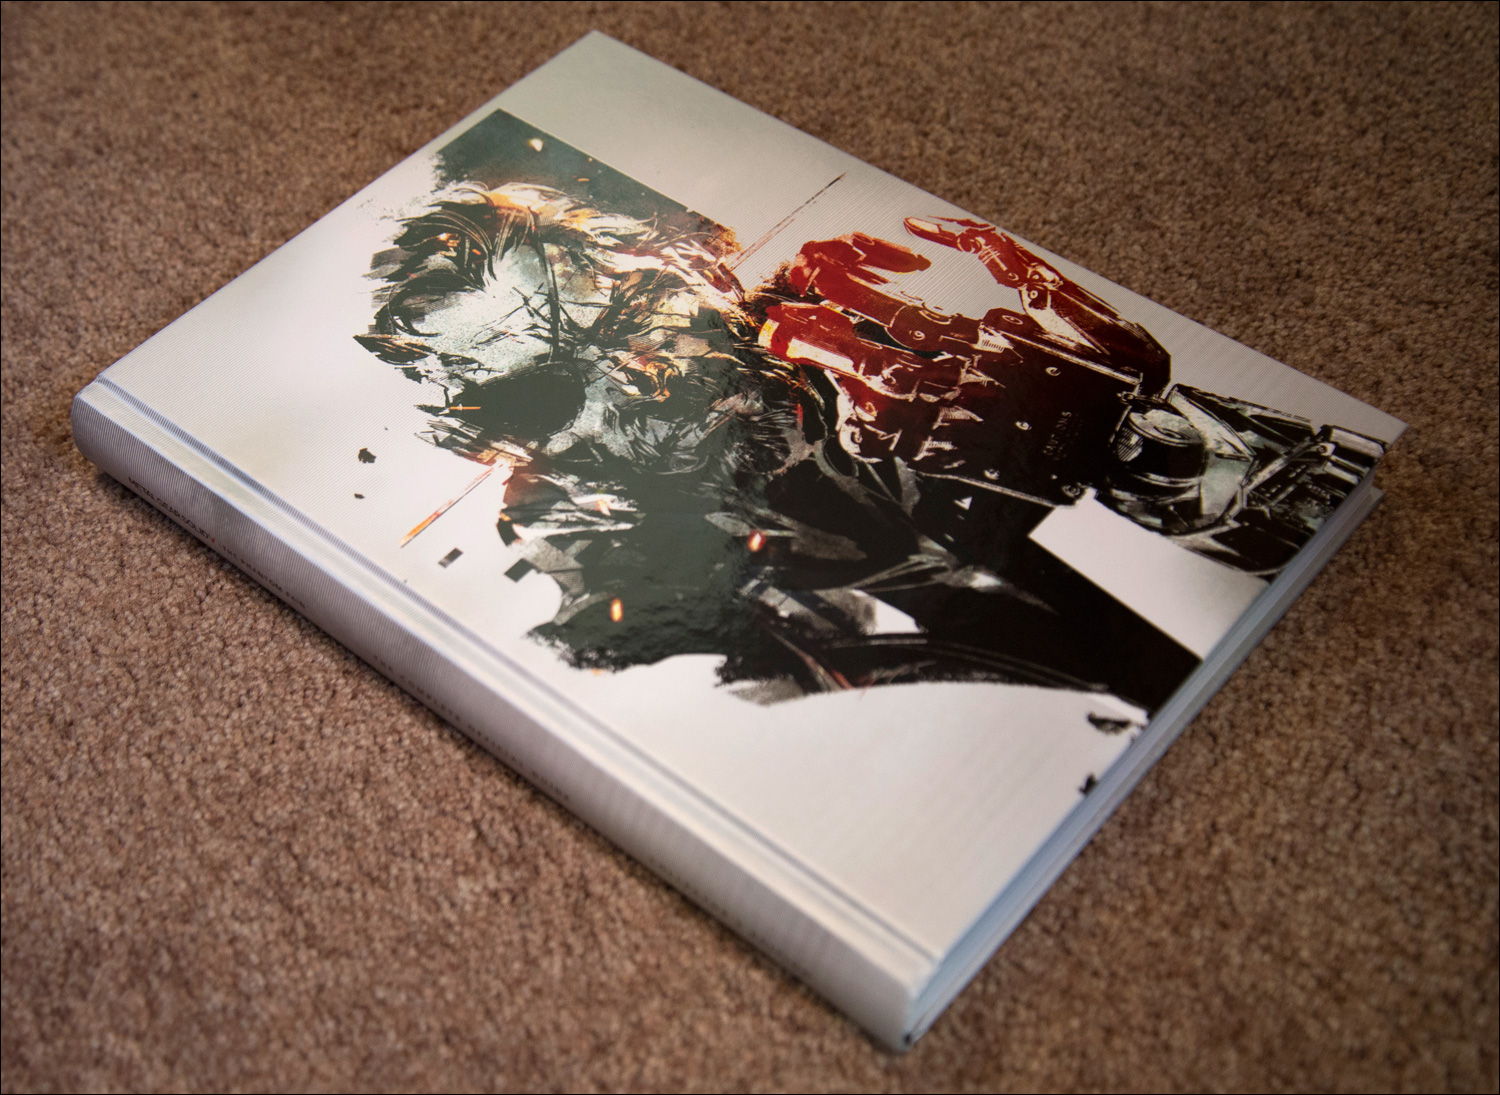 Metal-Gear-Solid-V-The-Phantom-Pain-GAME-Collector's-Edition-Guide